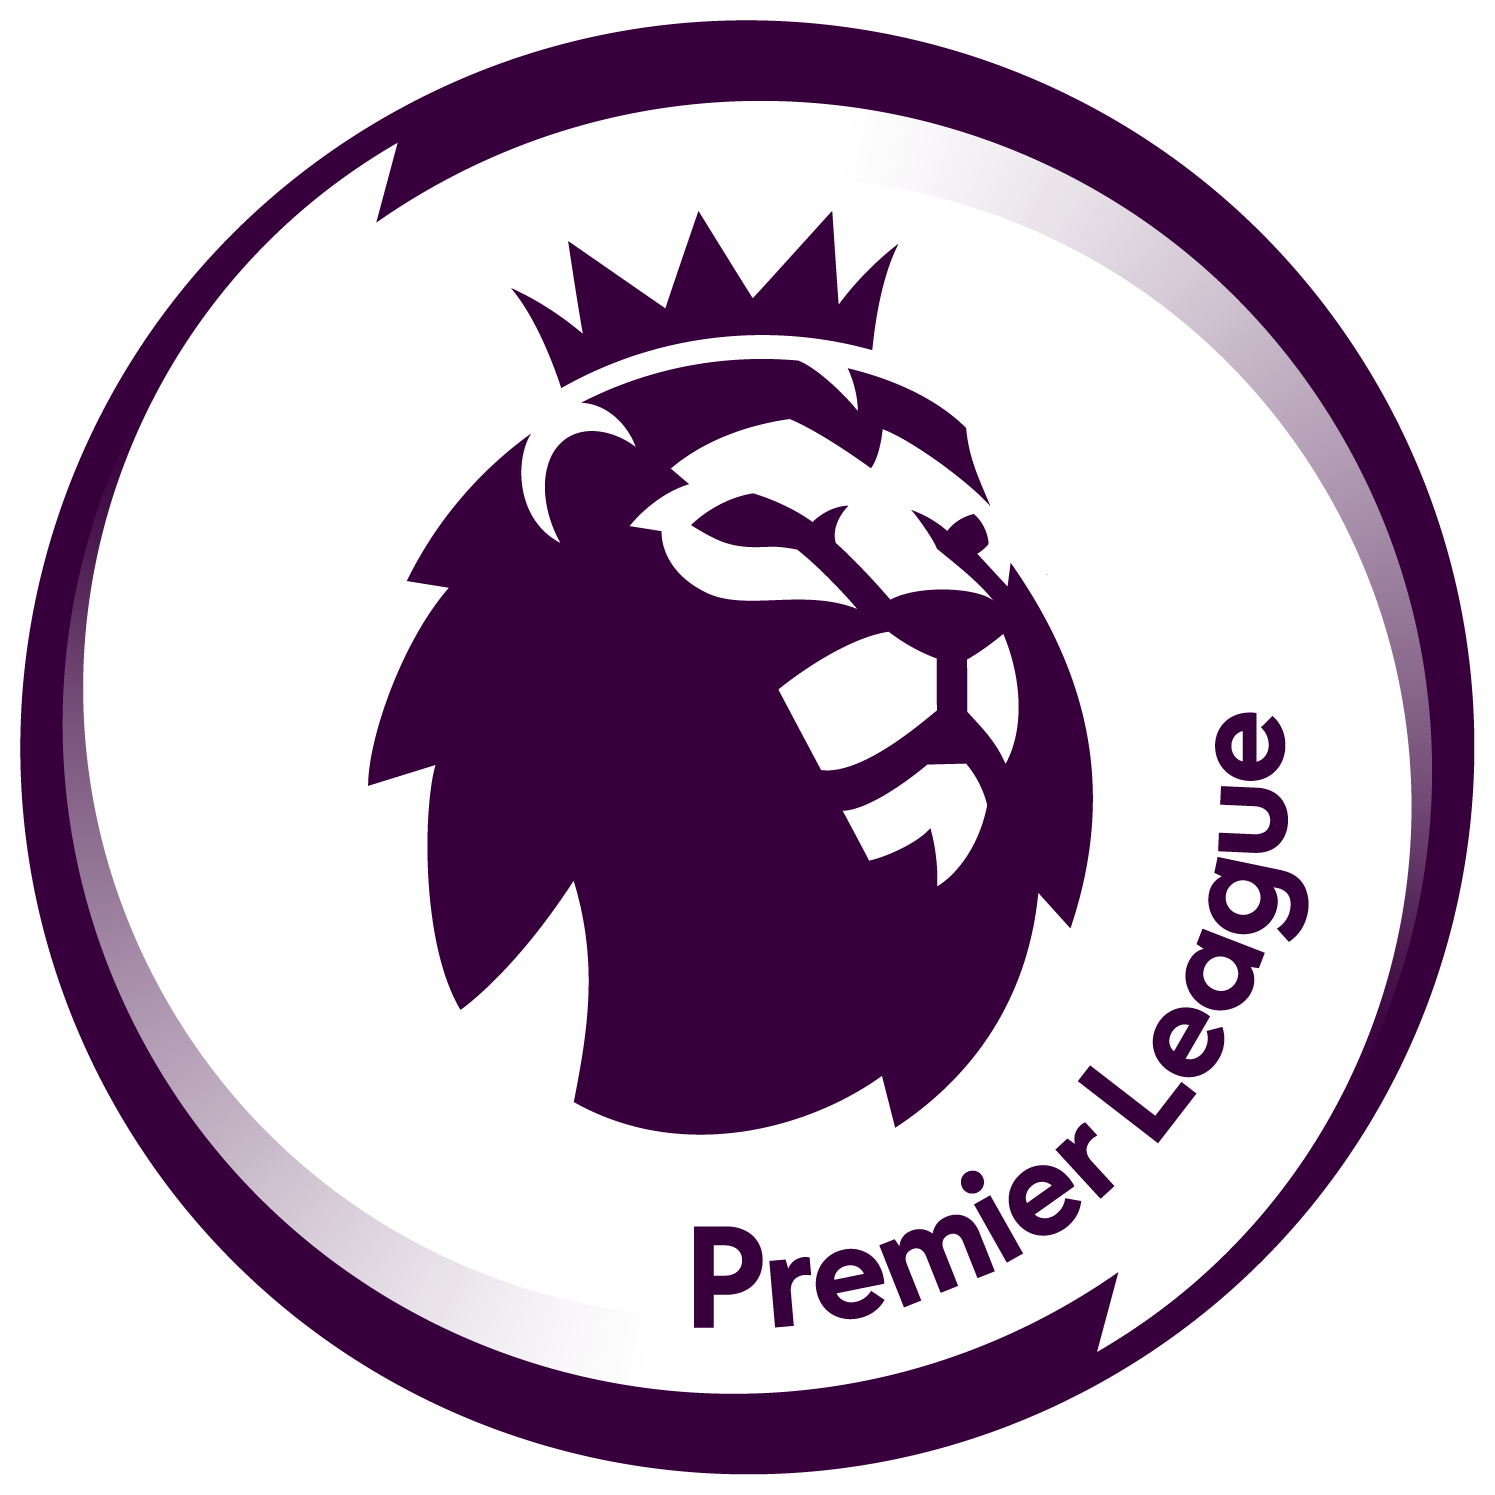 Die Premier League exklusiv streamen mit Sky X